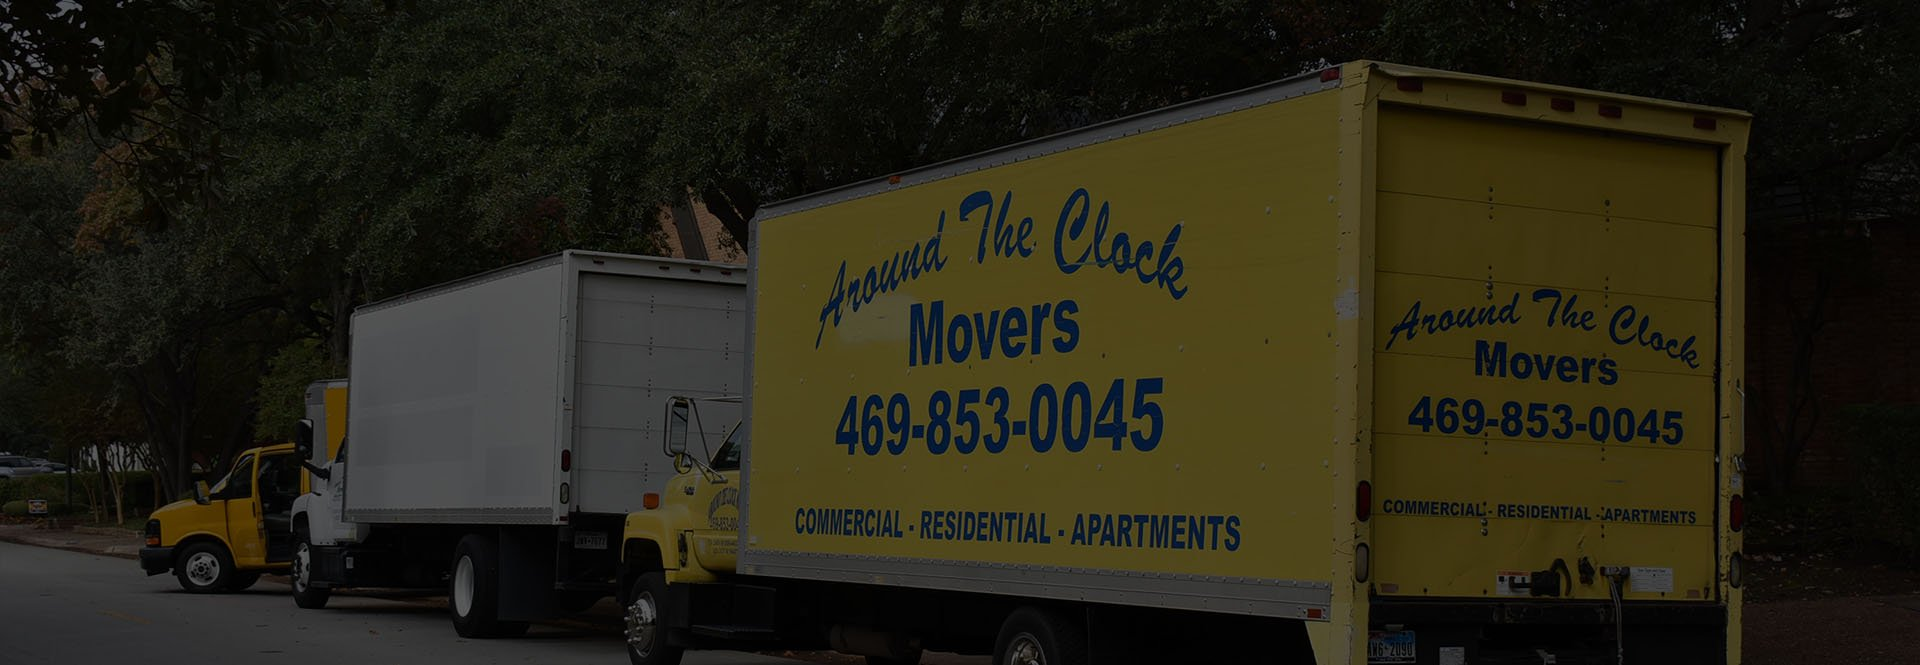 Around The Clock Moving U0026 Storage: Movers In Dallas, TX